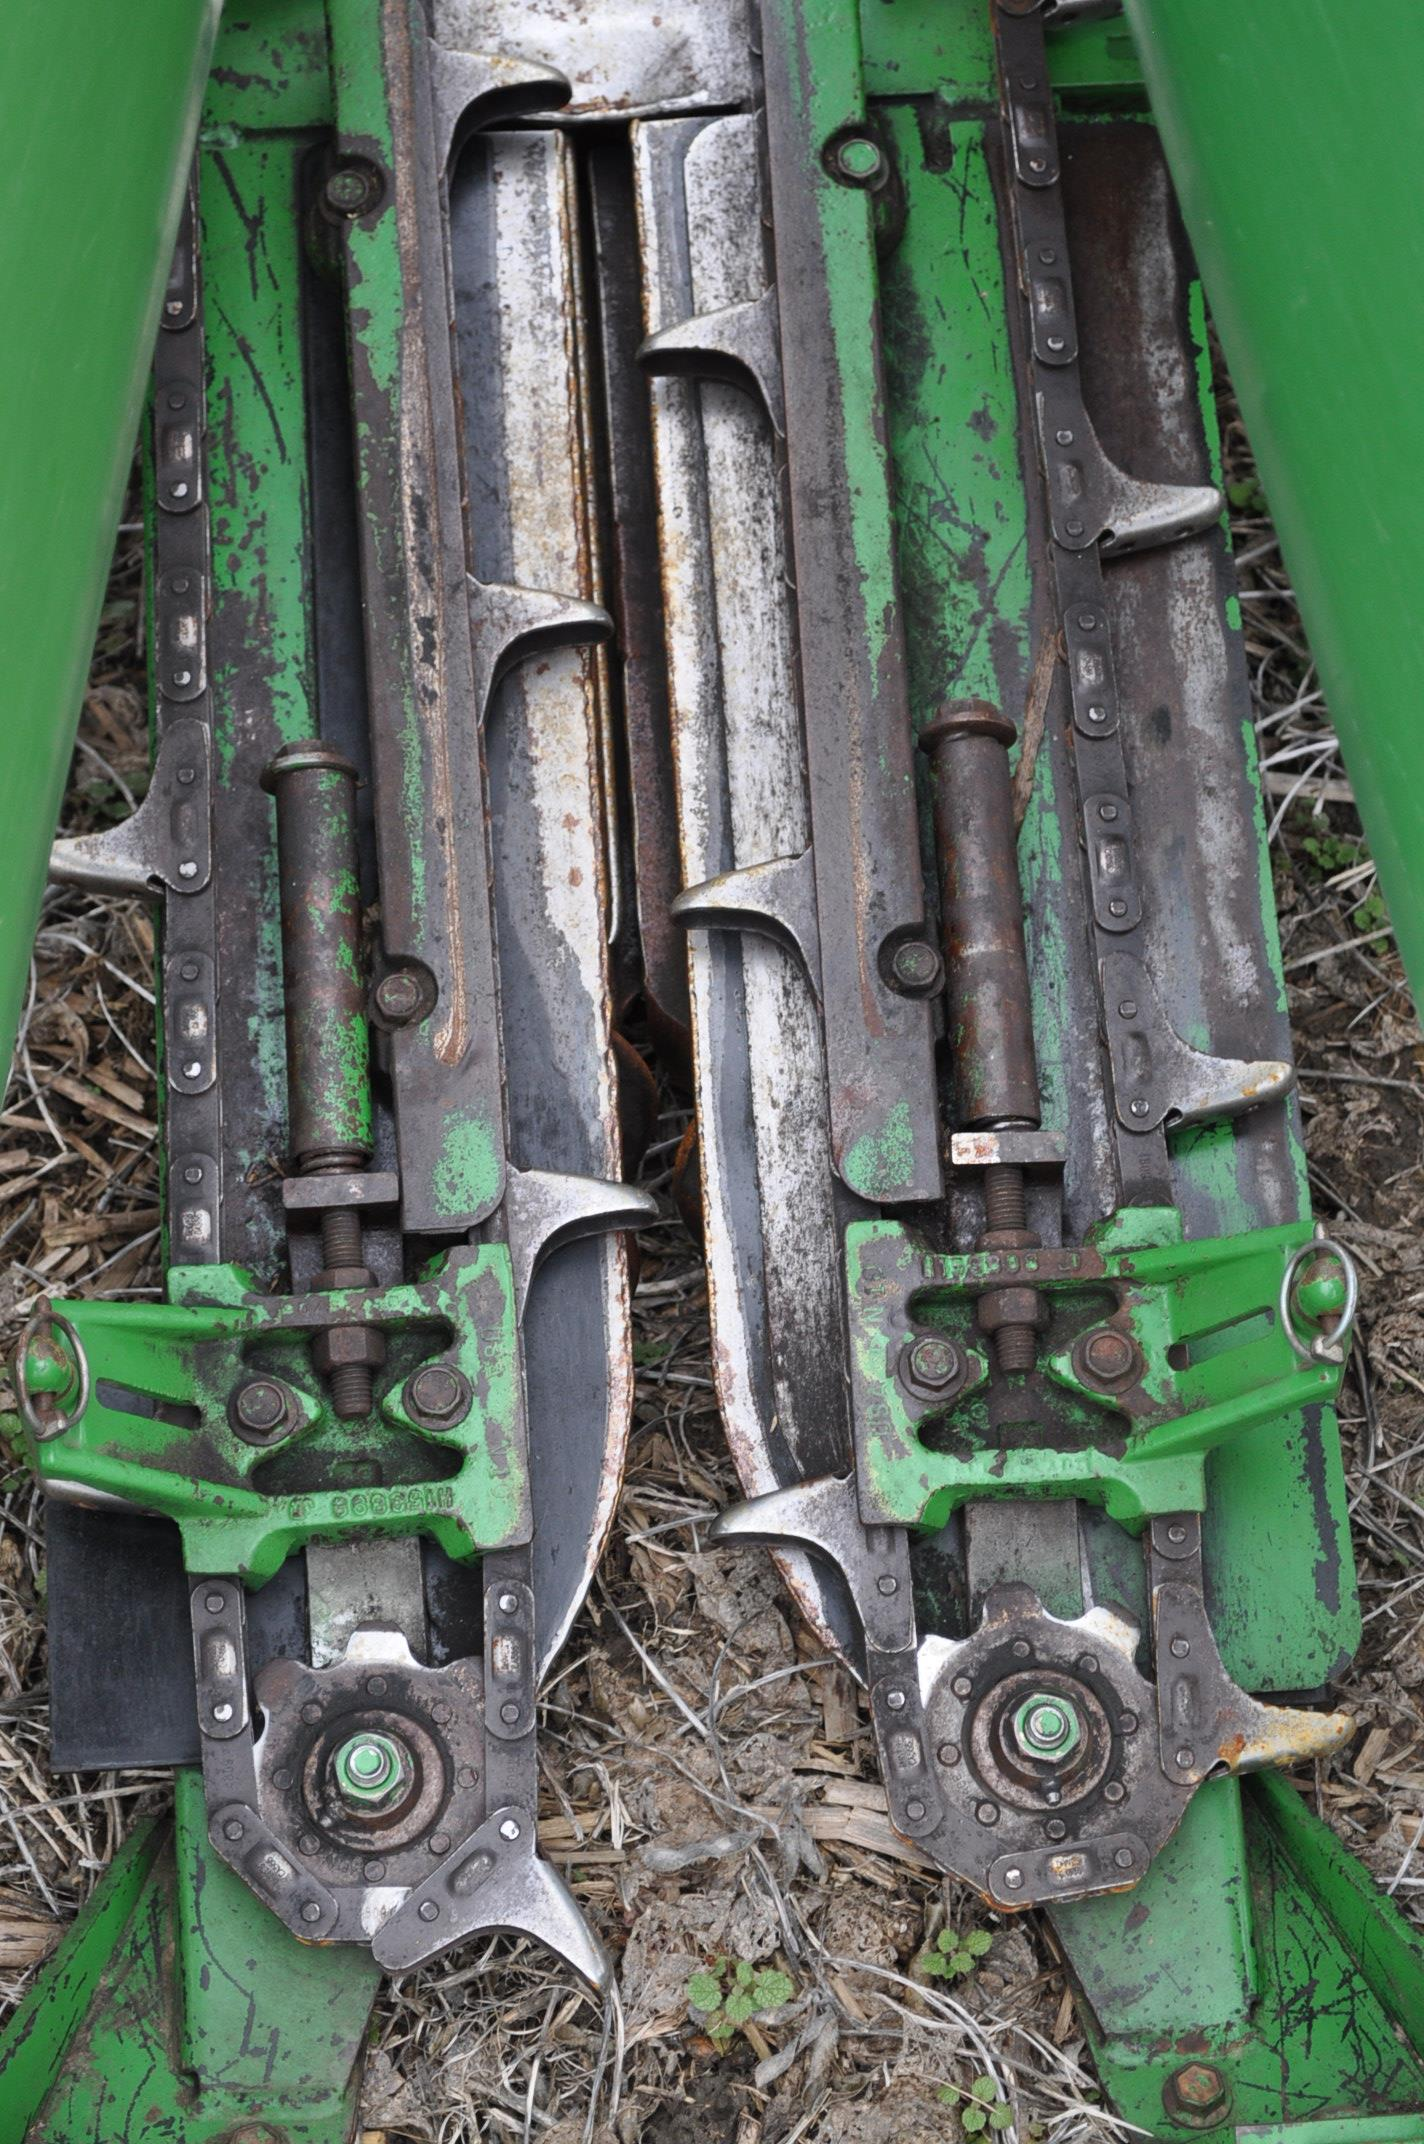 John Deere 693 corn head, poly, fluted rolls, hyd deck plates, pto shafts, SN 710815 - Image 8 of 14